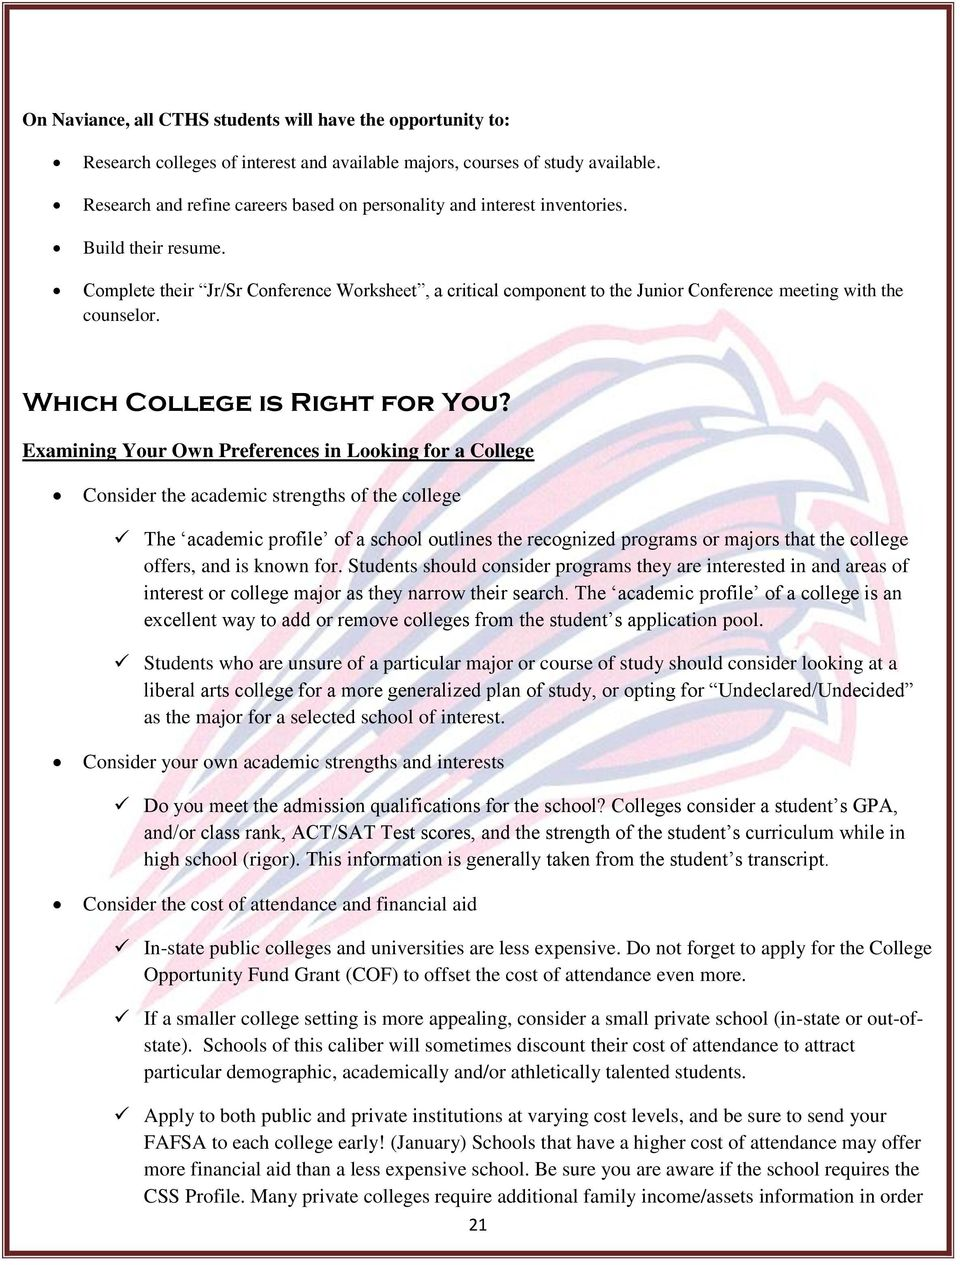 Complete their Jr/Sr Conference Worksheet, a critical component to the Junior Conference meeting with the counselor. Which College is Right for You?